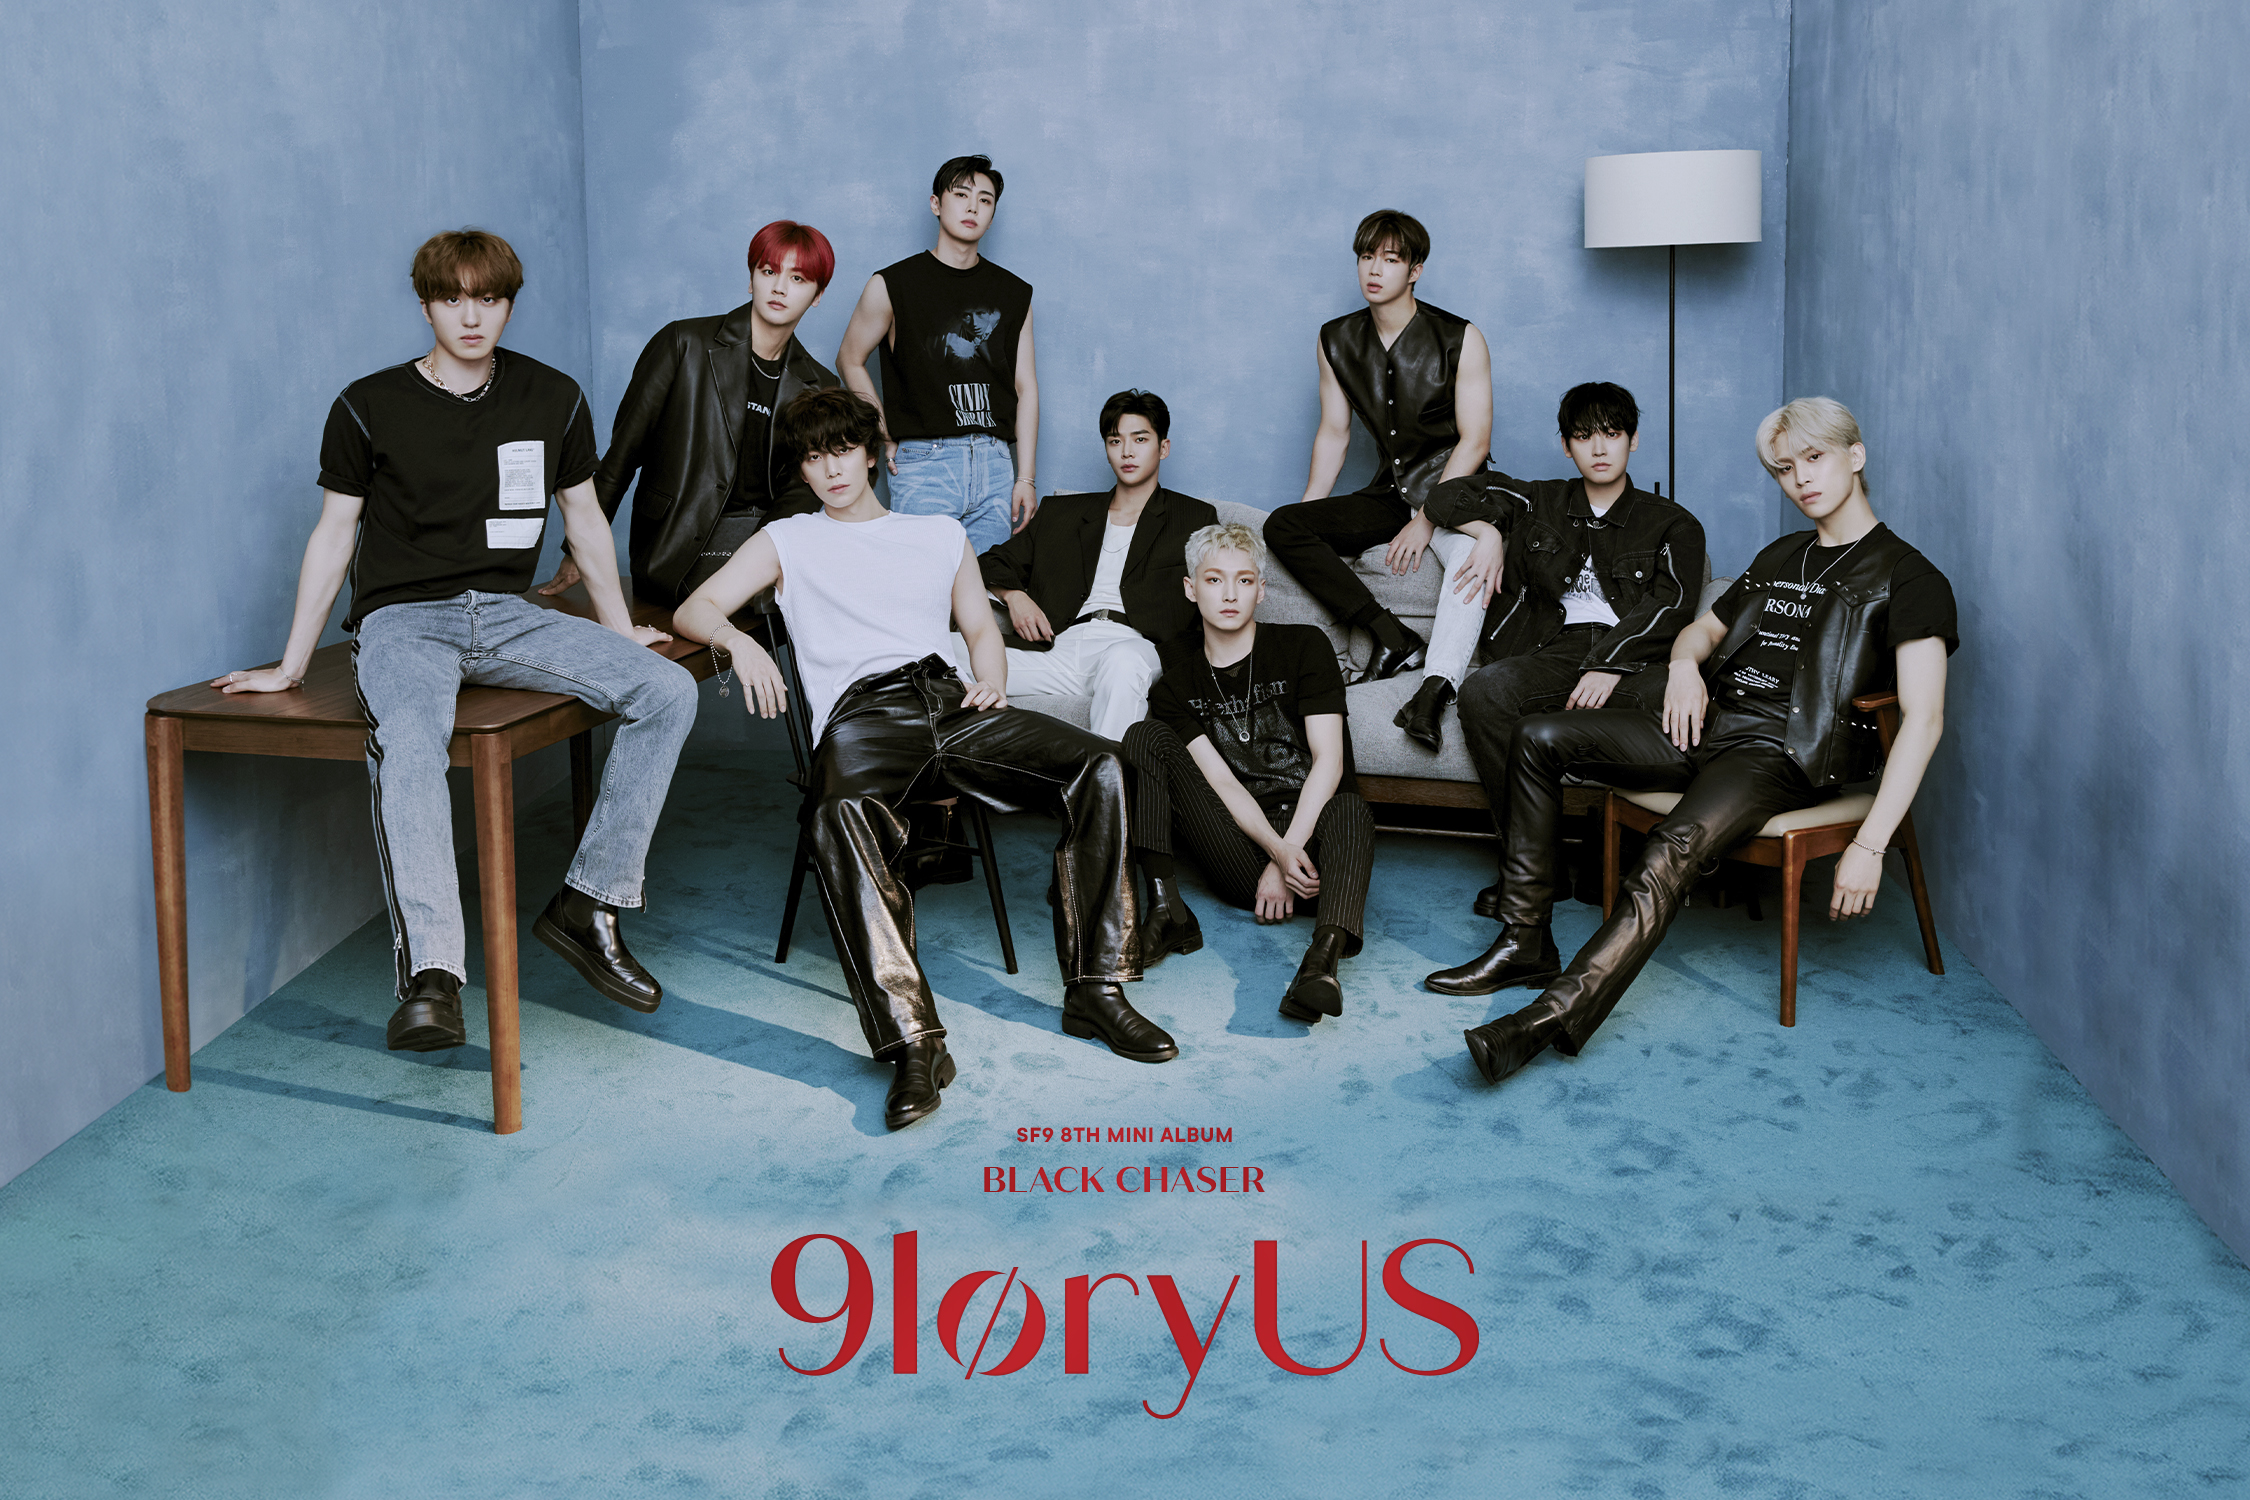 SF9 9loryUs Teaser Group Black Chaser